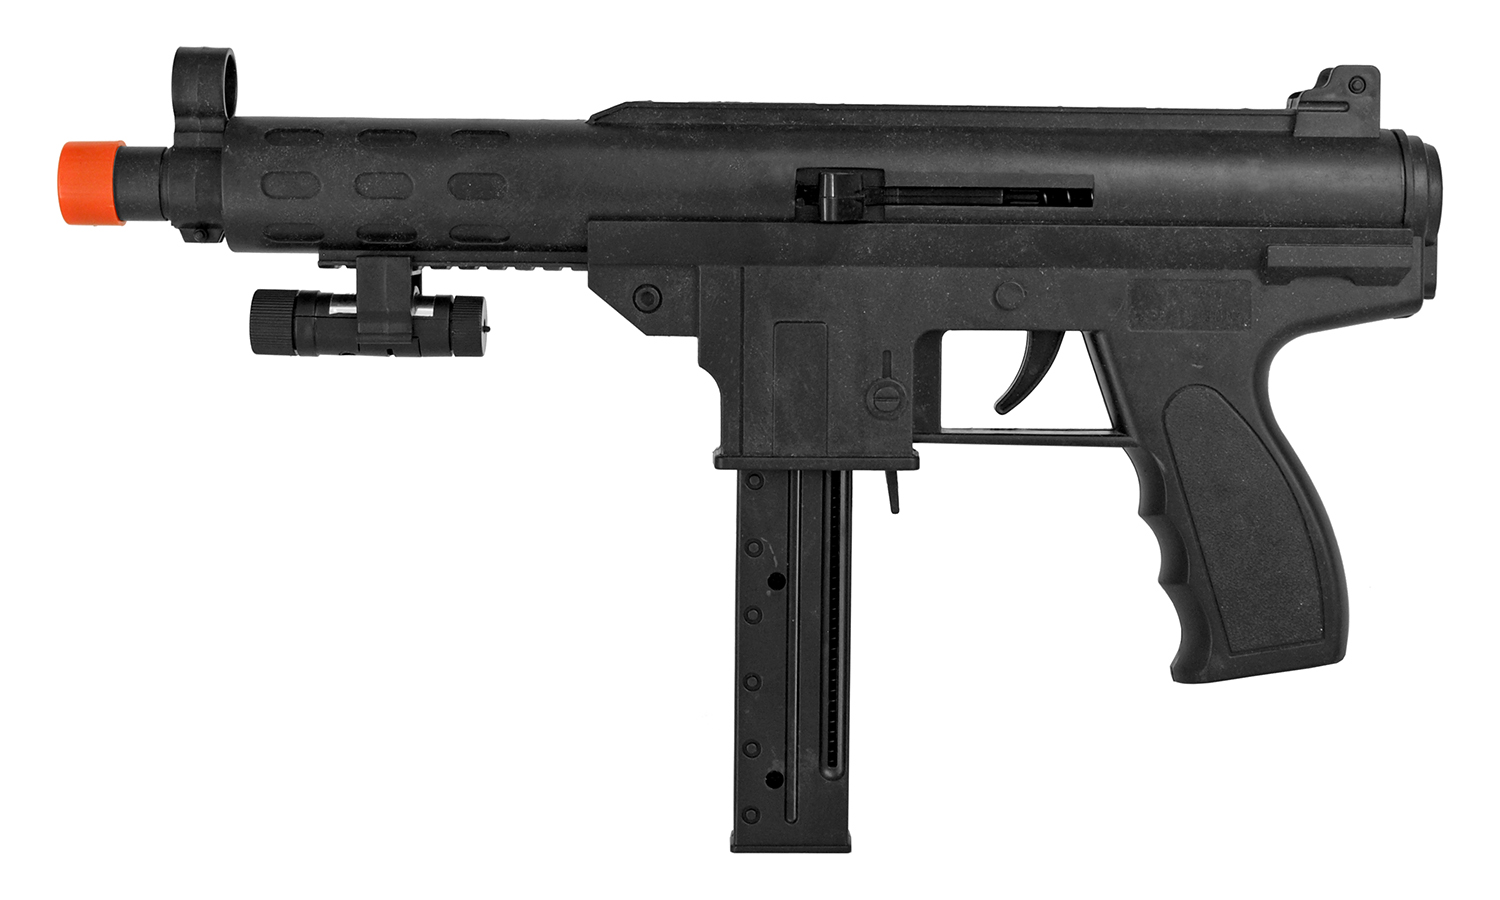 P2399 Spring Powered Airsoft Gun - UKARMS